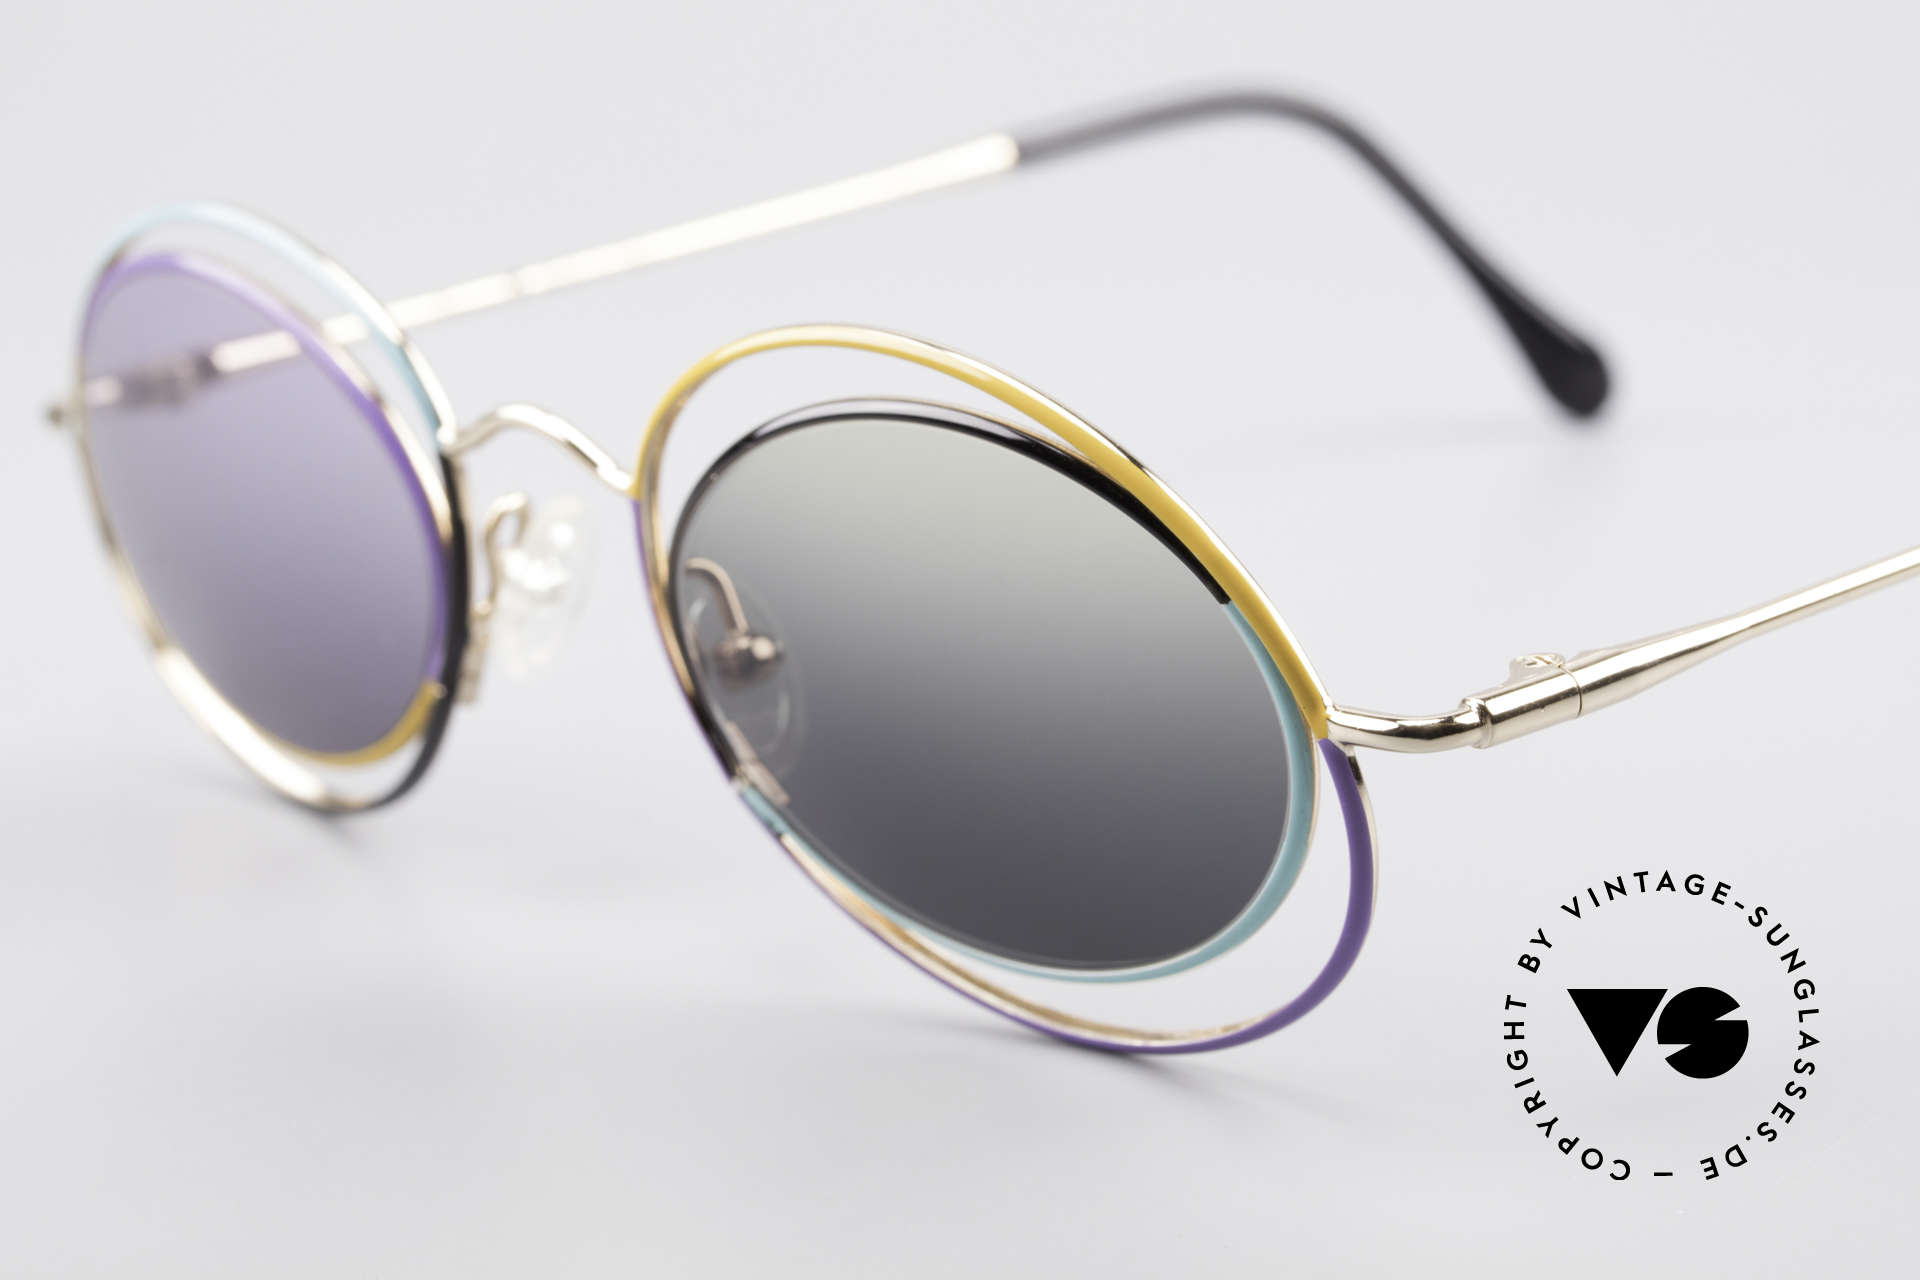 Casanova LC18 Vintage Art Sunglasses 80's, true vintage rarity & highlight for every collector, Made for Women